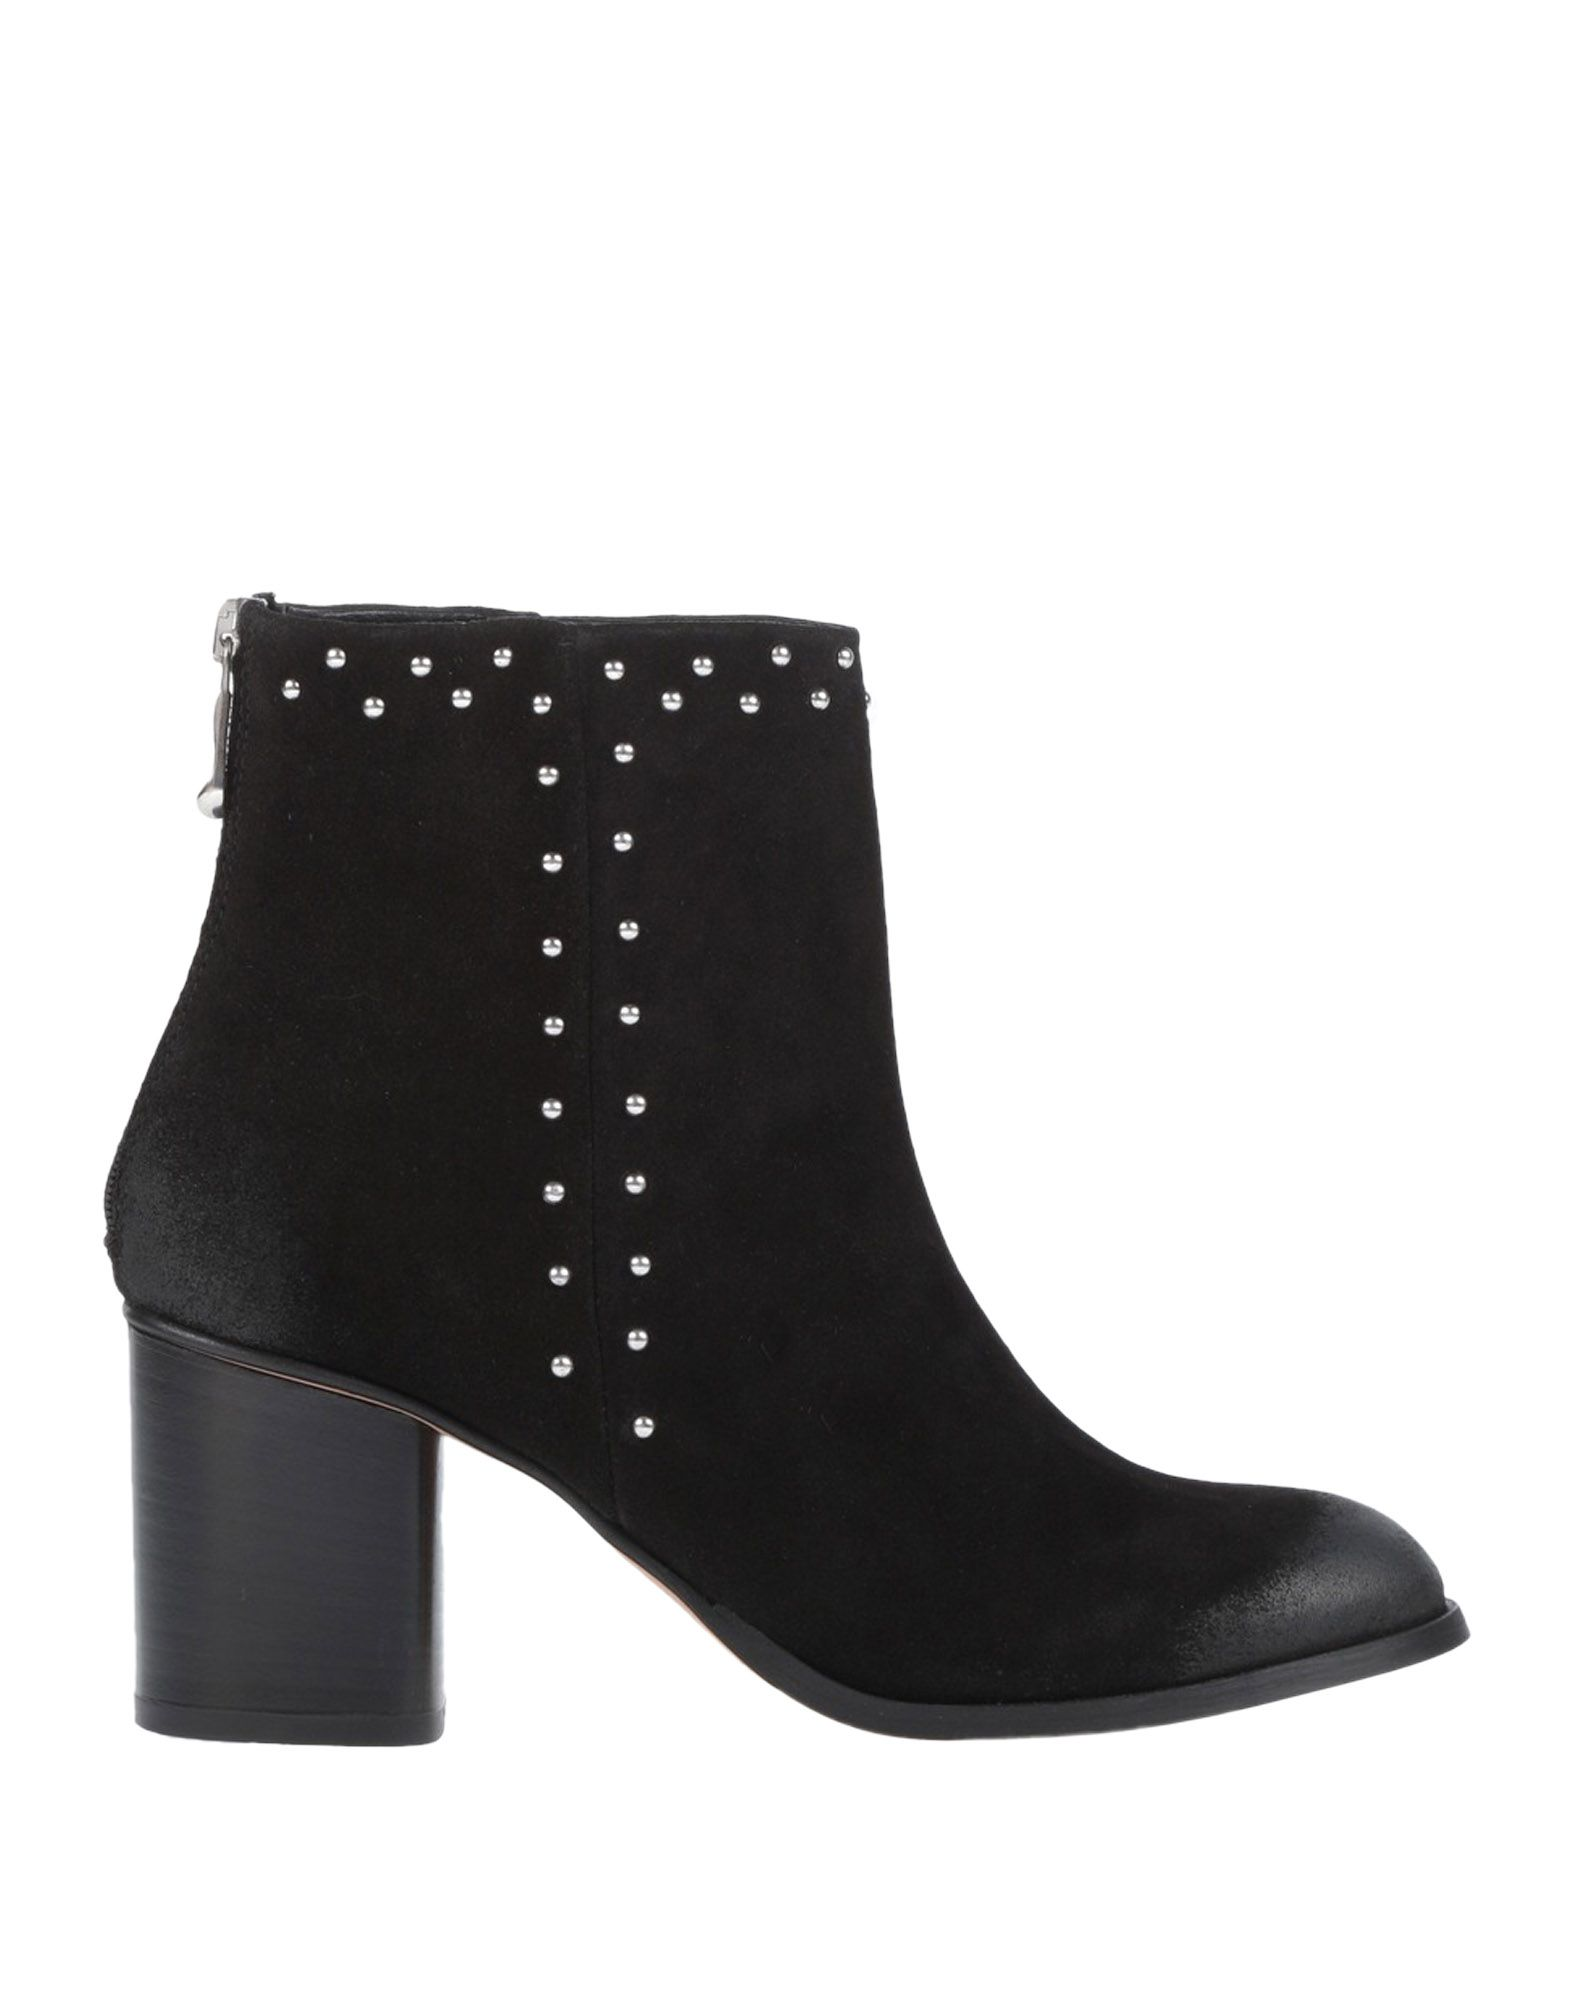 Gusto Ankle Boot - Women on Gusto Ankle Boots online on Women  Australia - 11285987GH 1dfa32